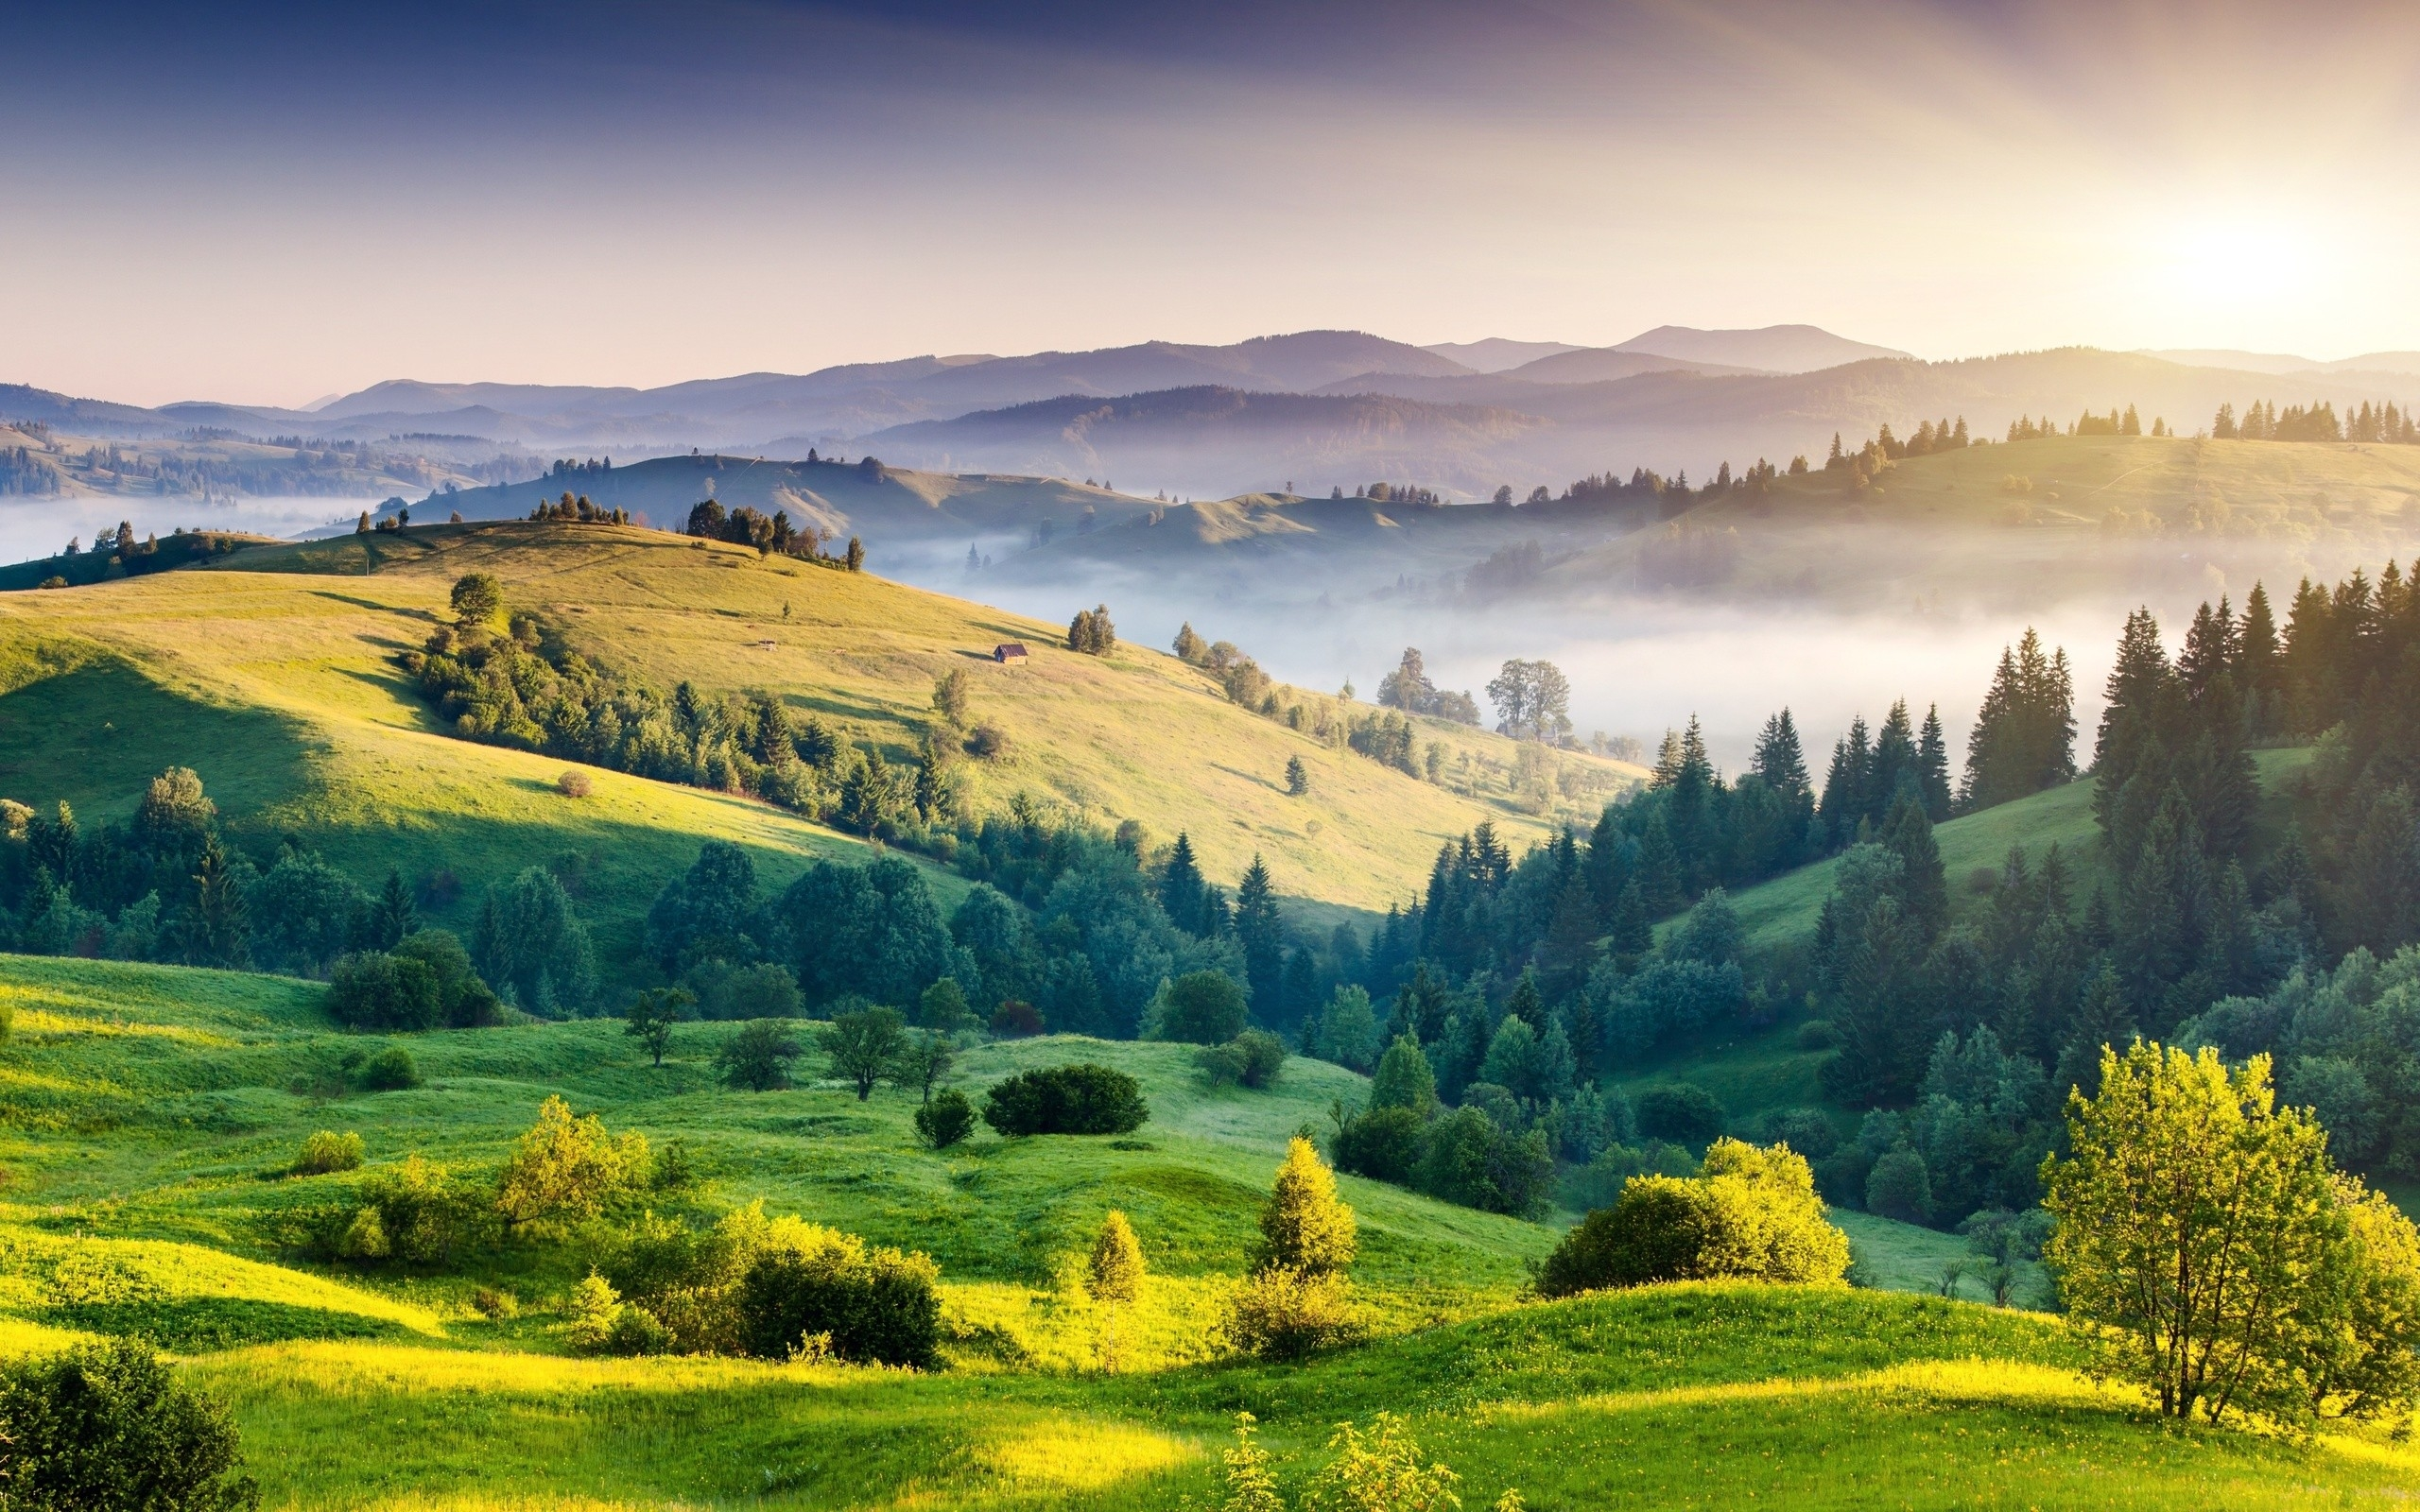 Beautiful Landscape Wallpapers Hd Images: Beautiful Landscape Backgrounds Landscape Wallpapers